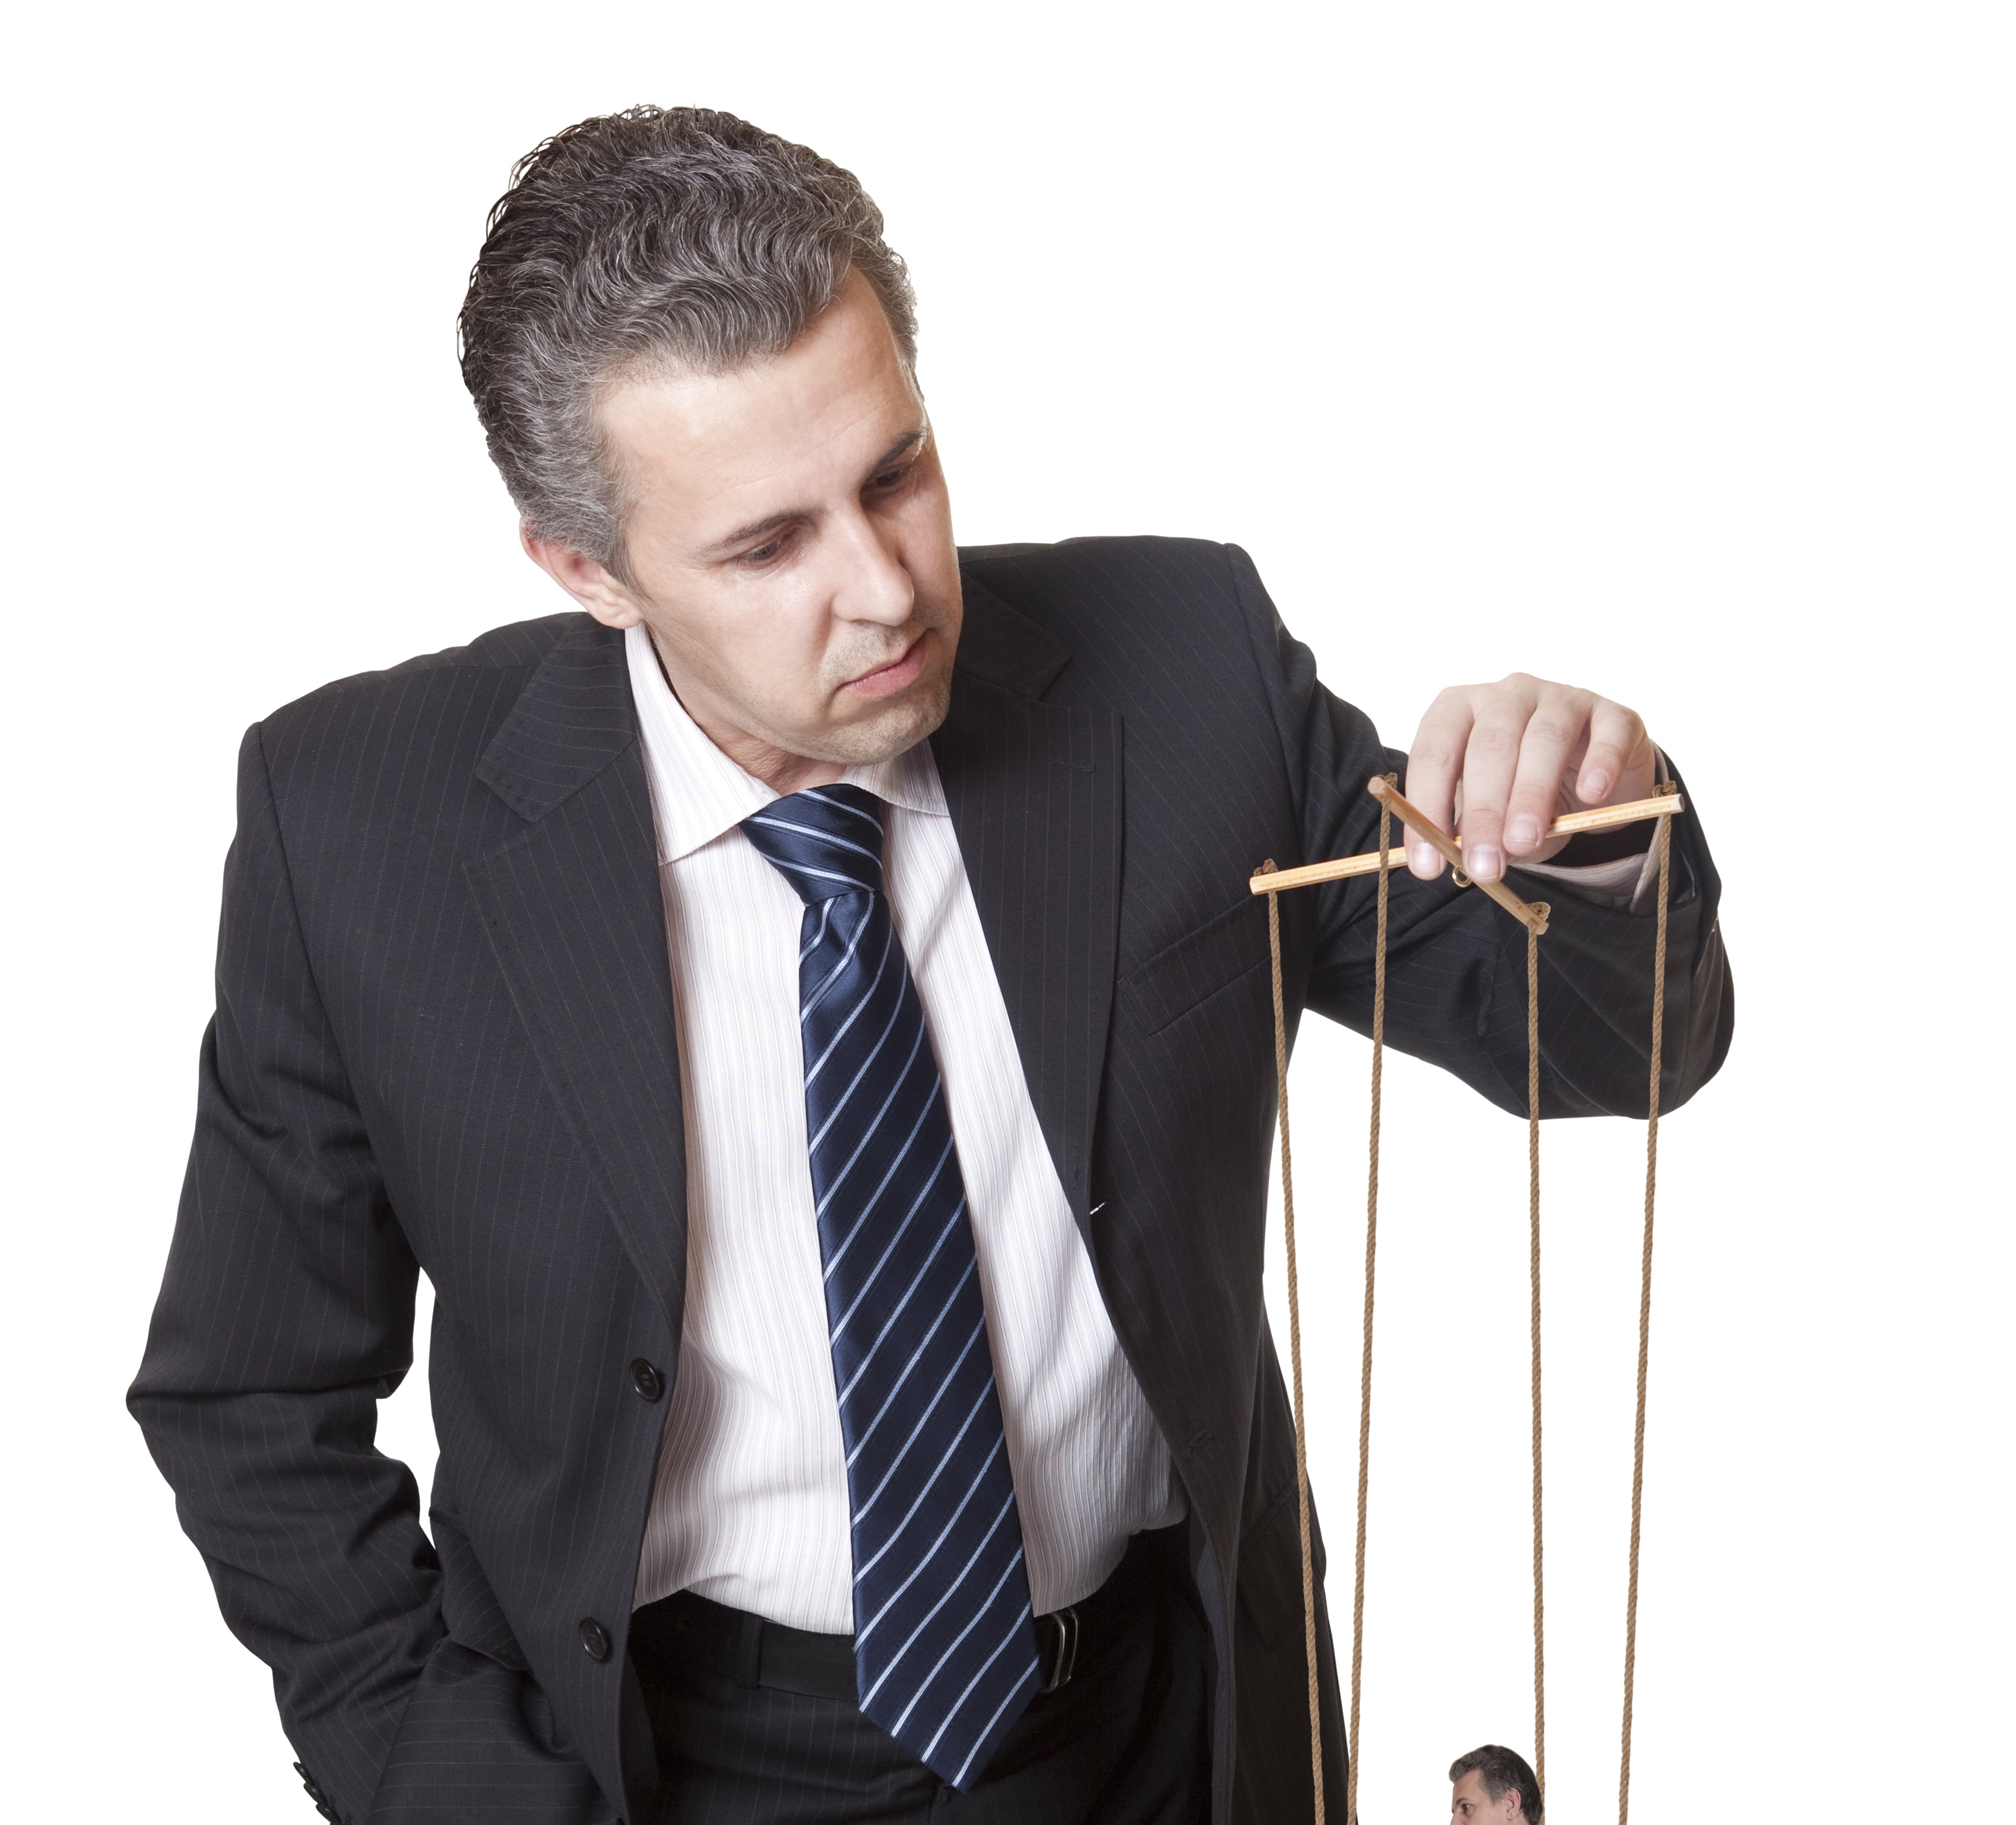 12 Failures of Highly Manipulative People | Psychology Today